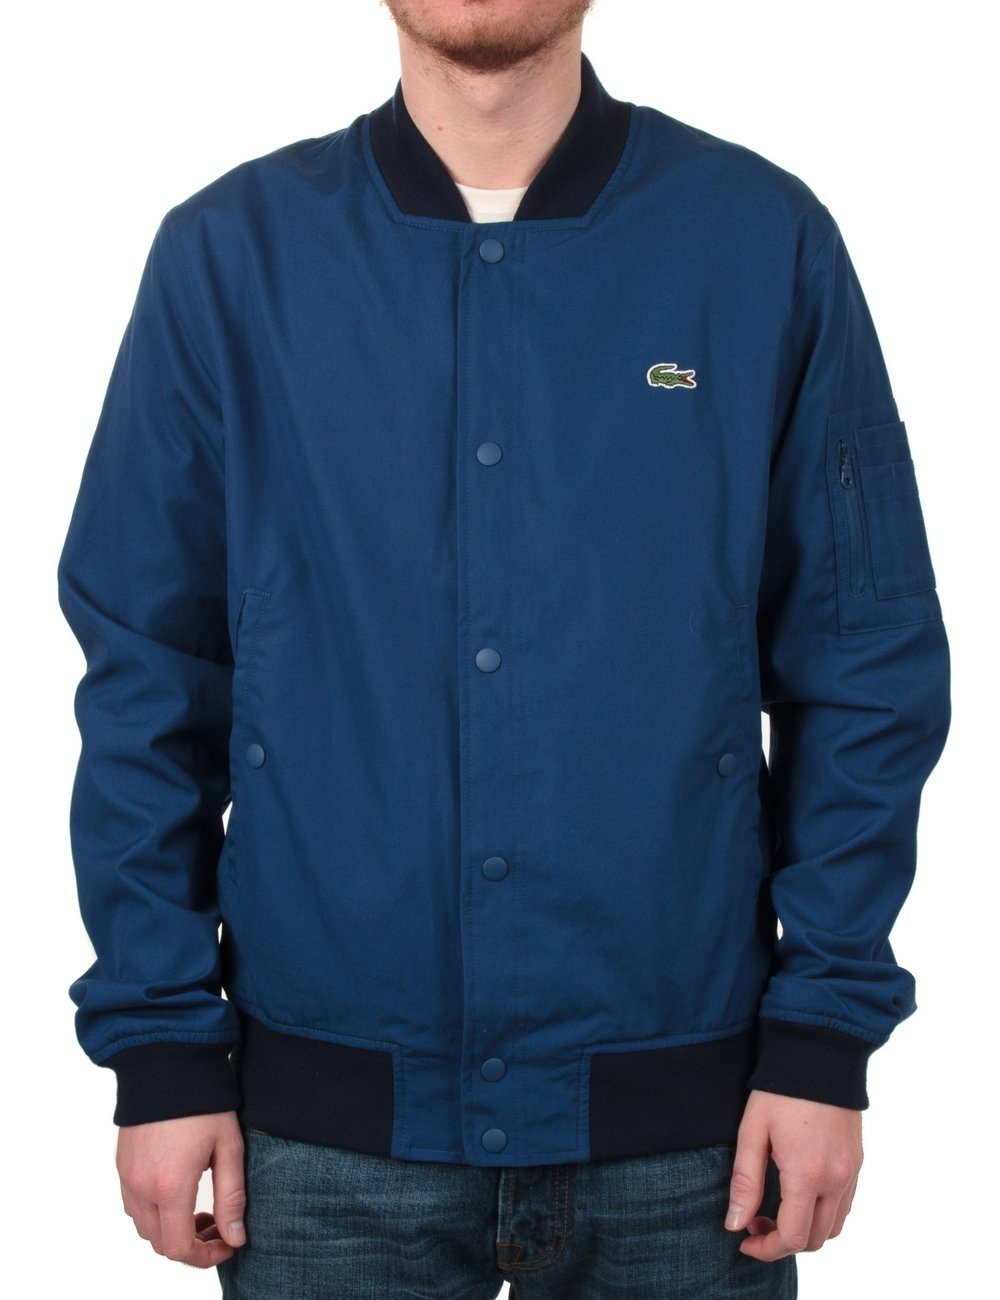 lacoste live blouson bomber jacket blue lacoste live from fat buddha store uk. Black Bedroom Furniture Sets. Home Design Ideas